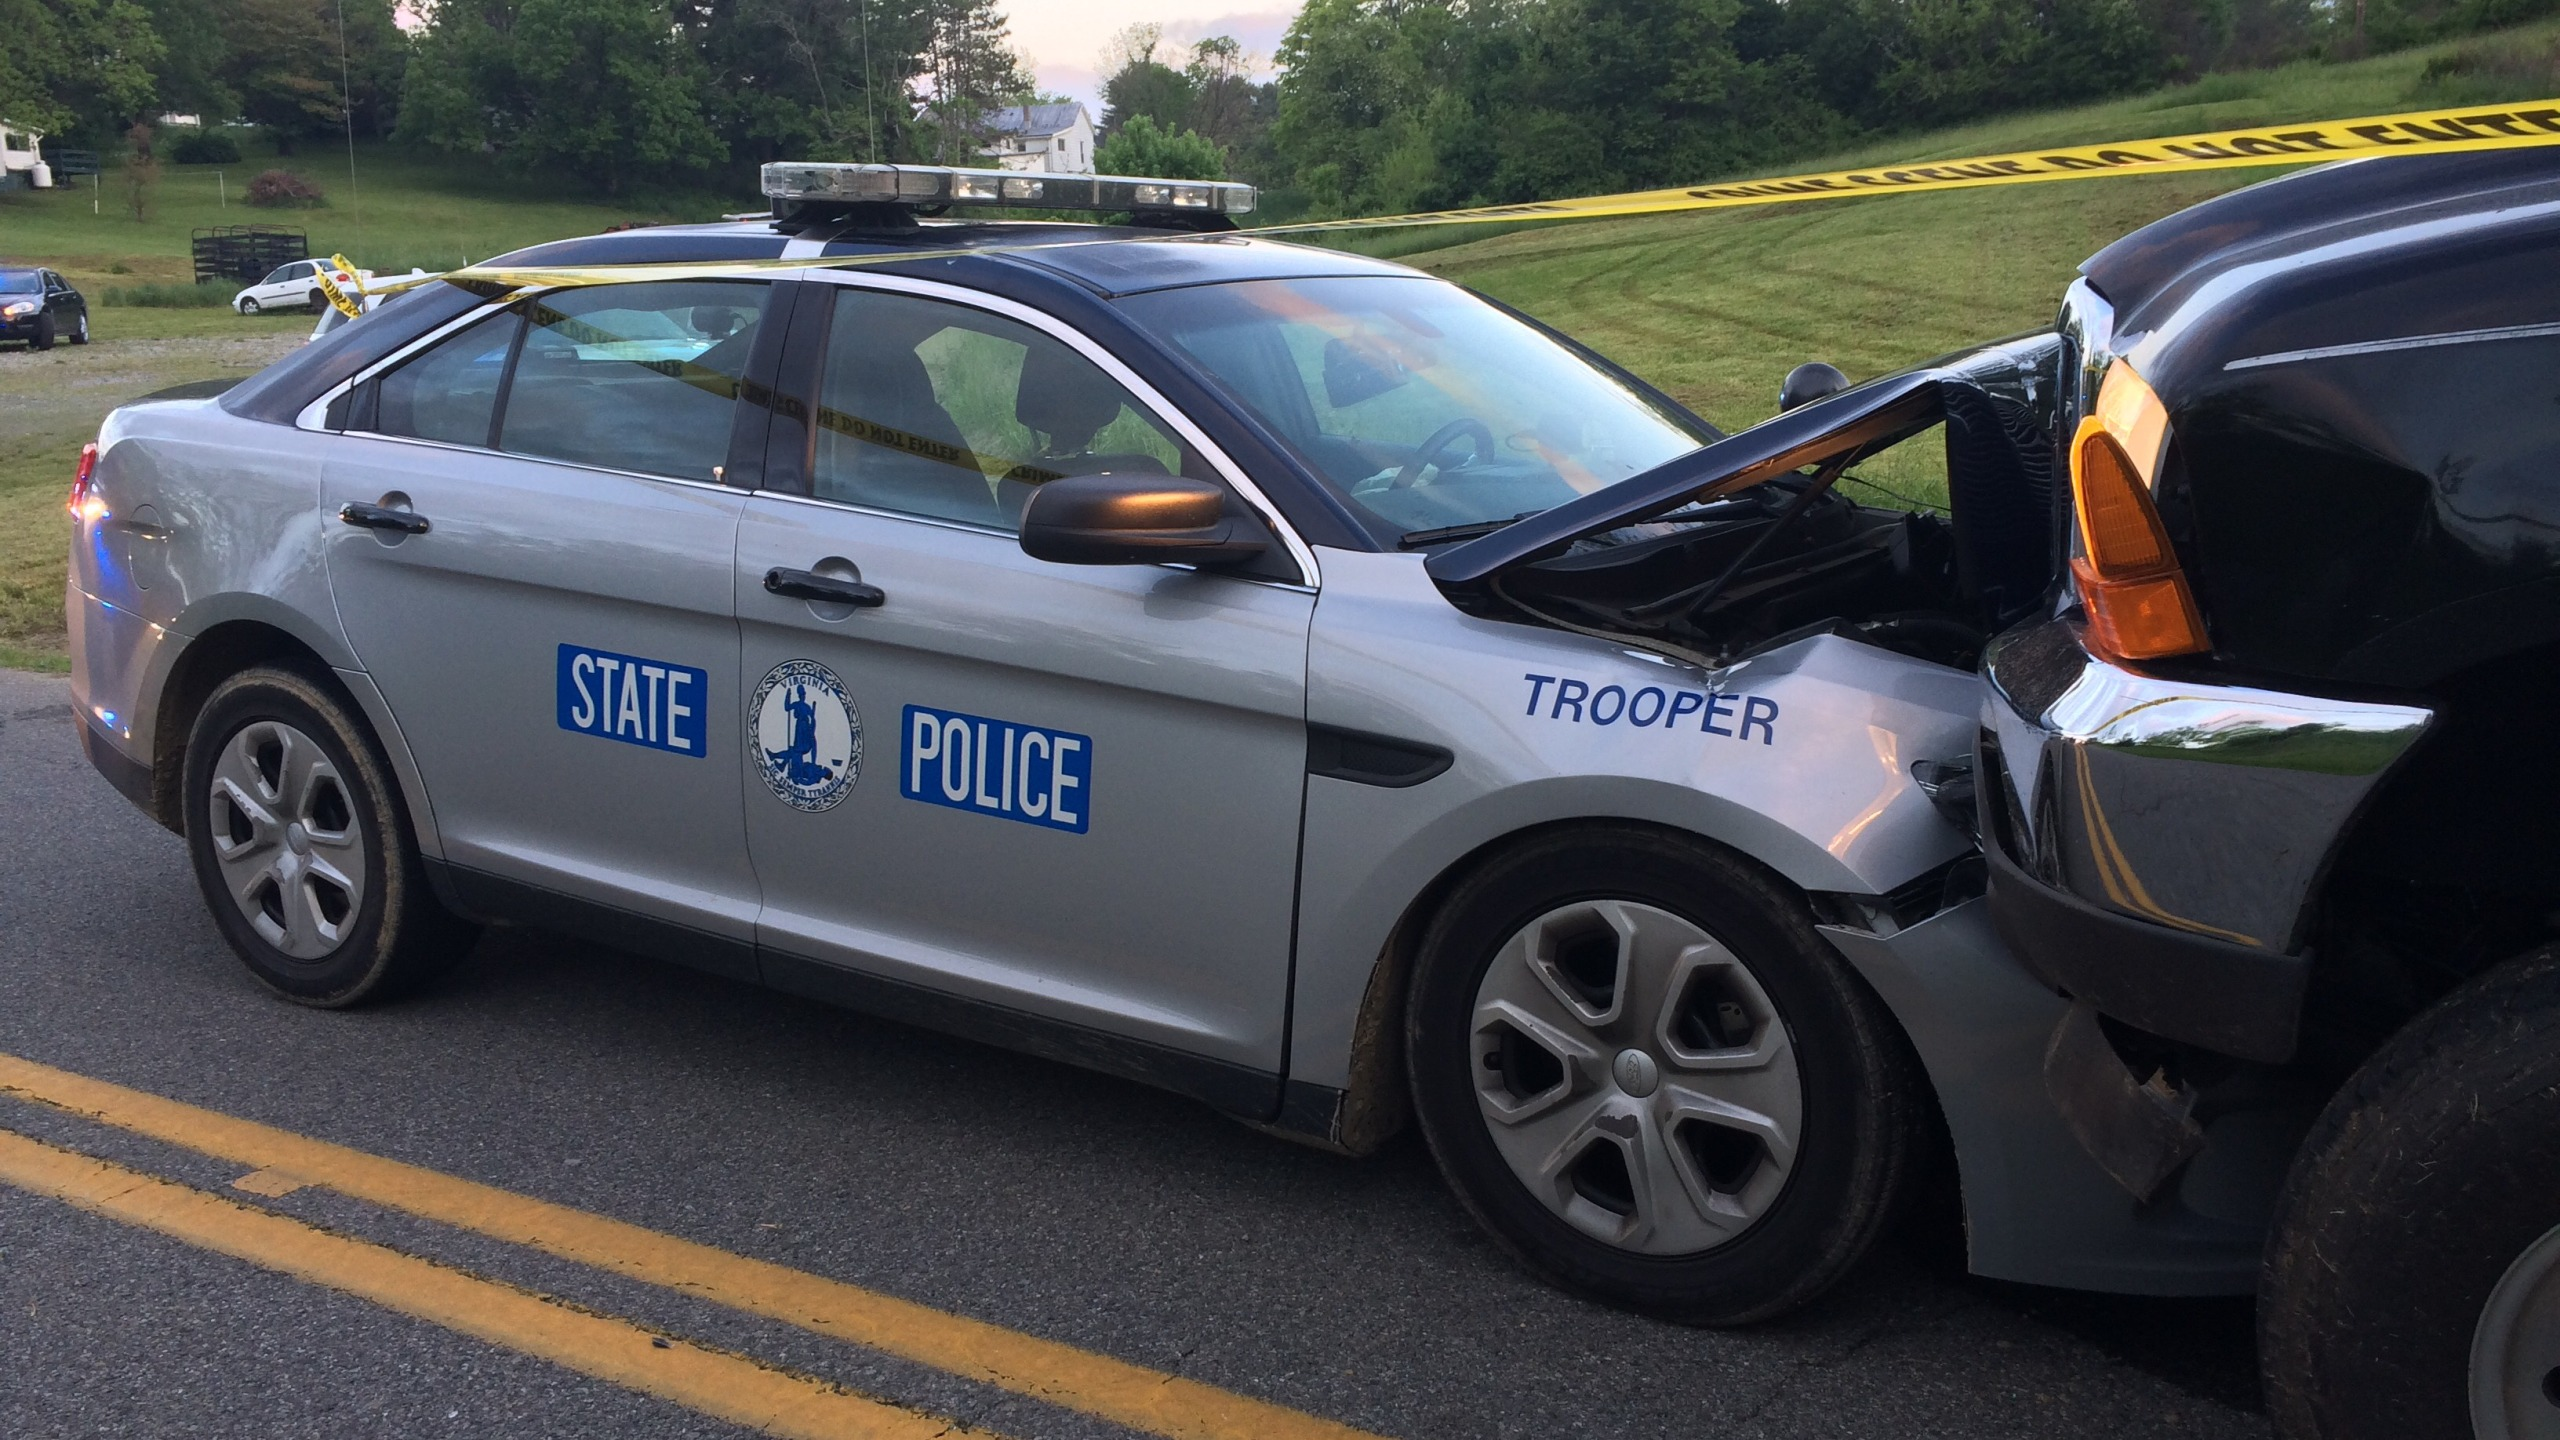 5-9-19 West Railroad Ave in Wythe County - Pursuit & Shooting Incident_1557416314590.jpg